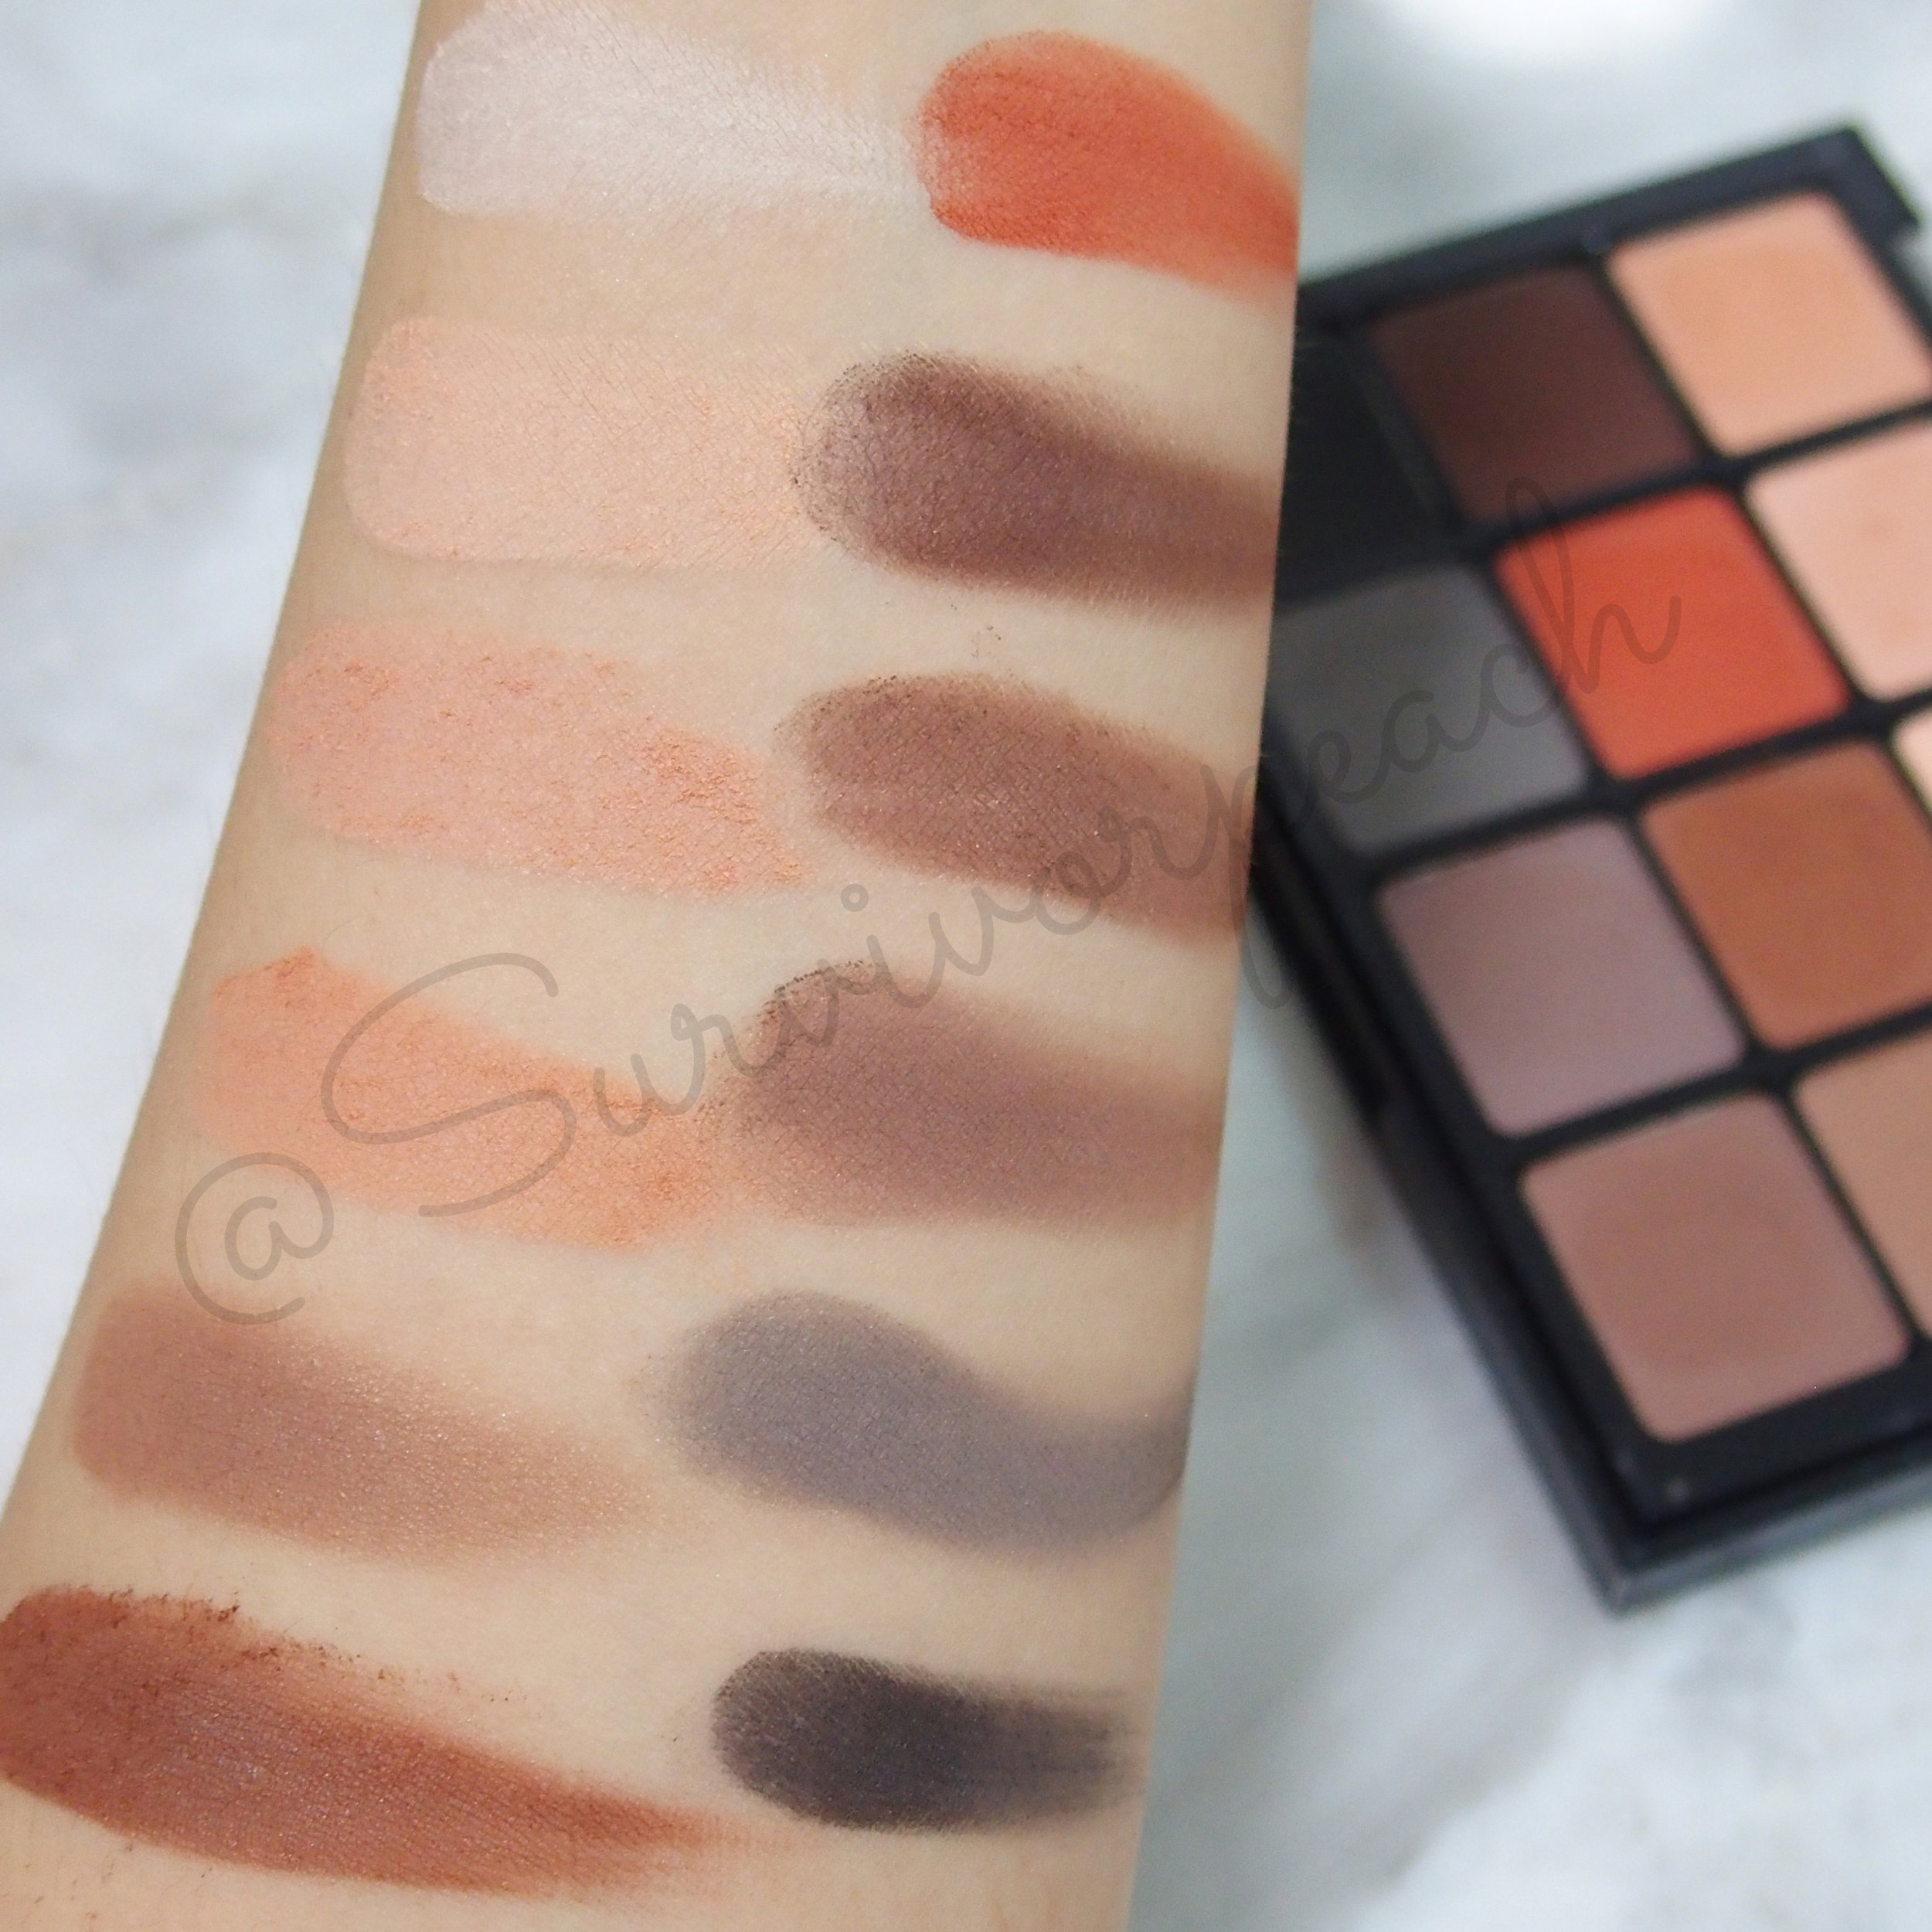 Swatches of the Viseart Natural Matte Palette - indoors